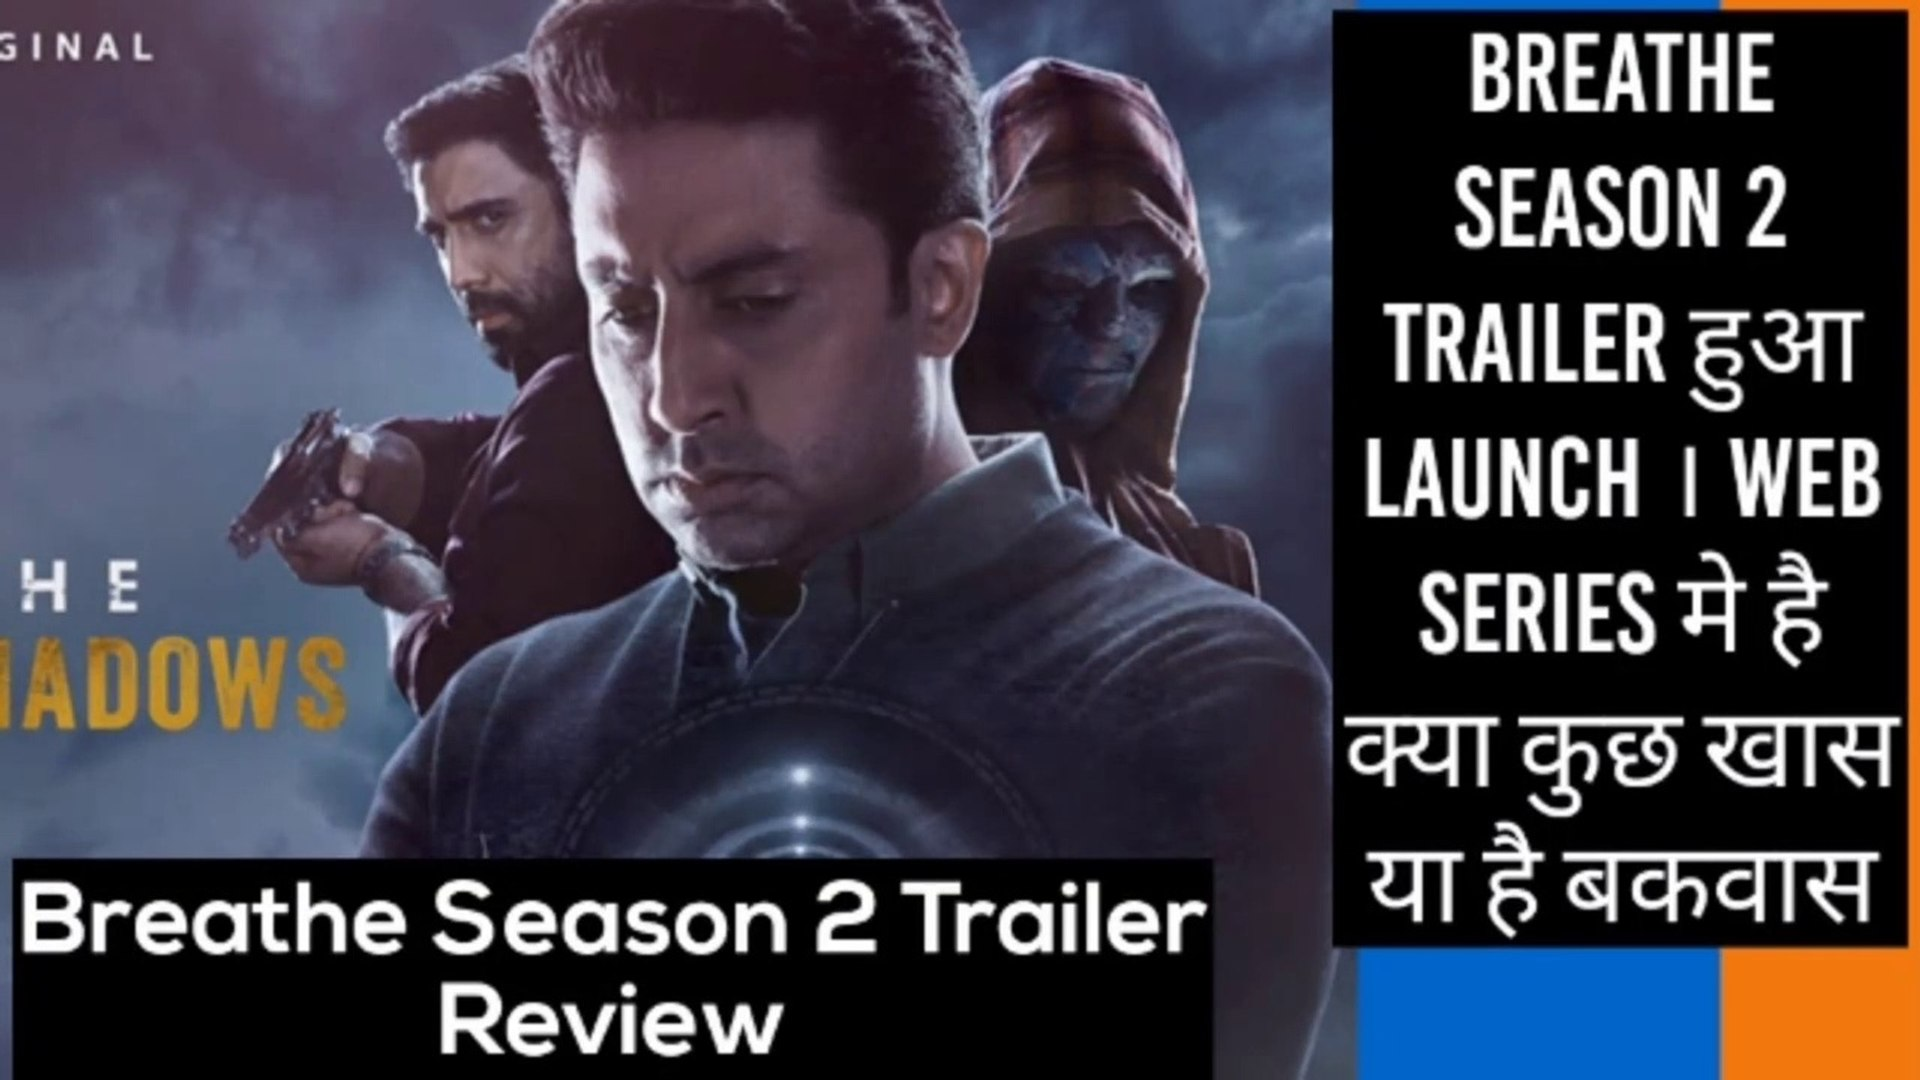 Breathe Into The Shadows Trailer Review ।  Abhishek Bachchan । Amit Sadh। Amazon Prime Video ।